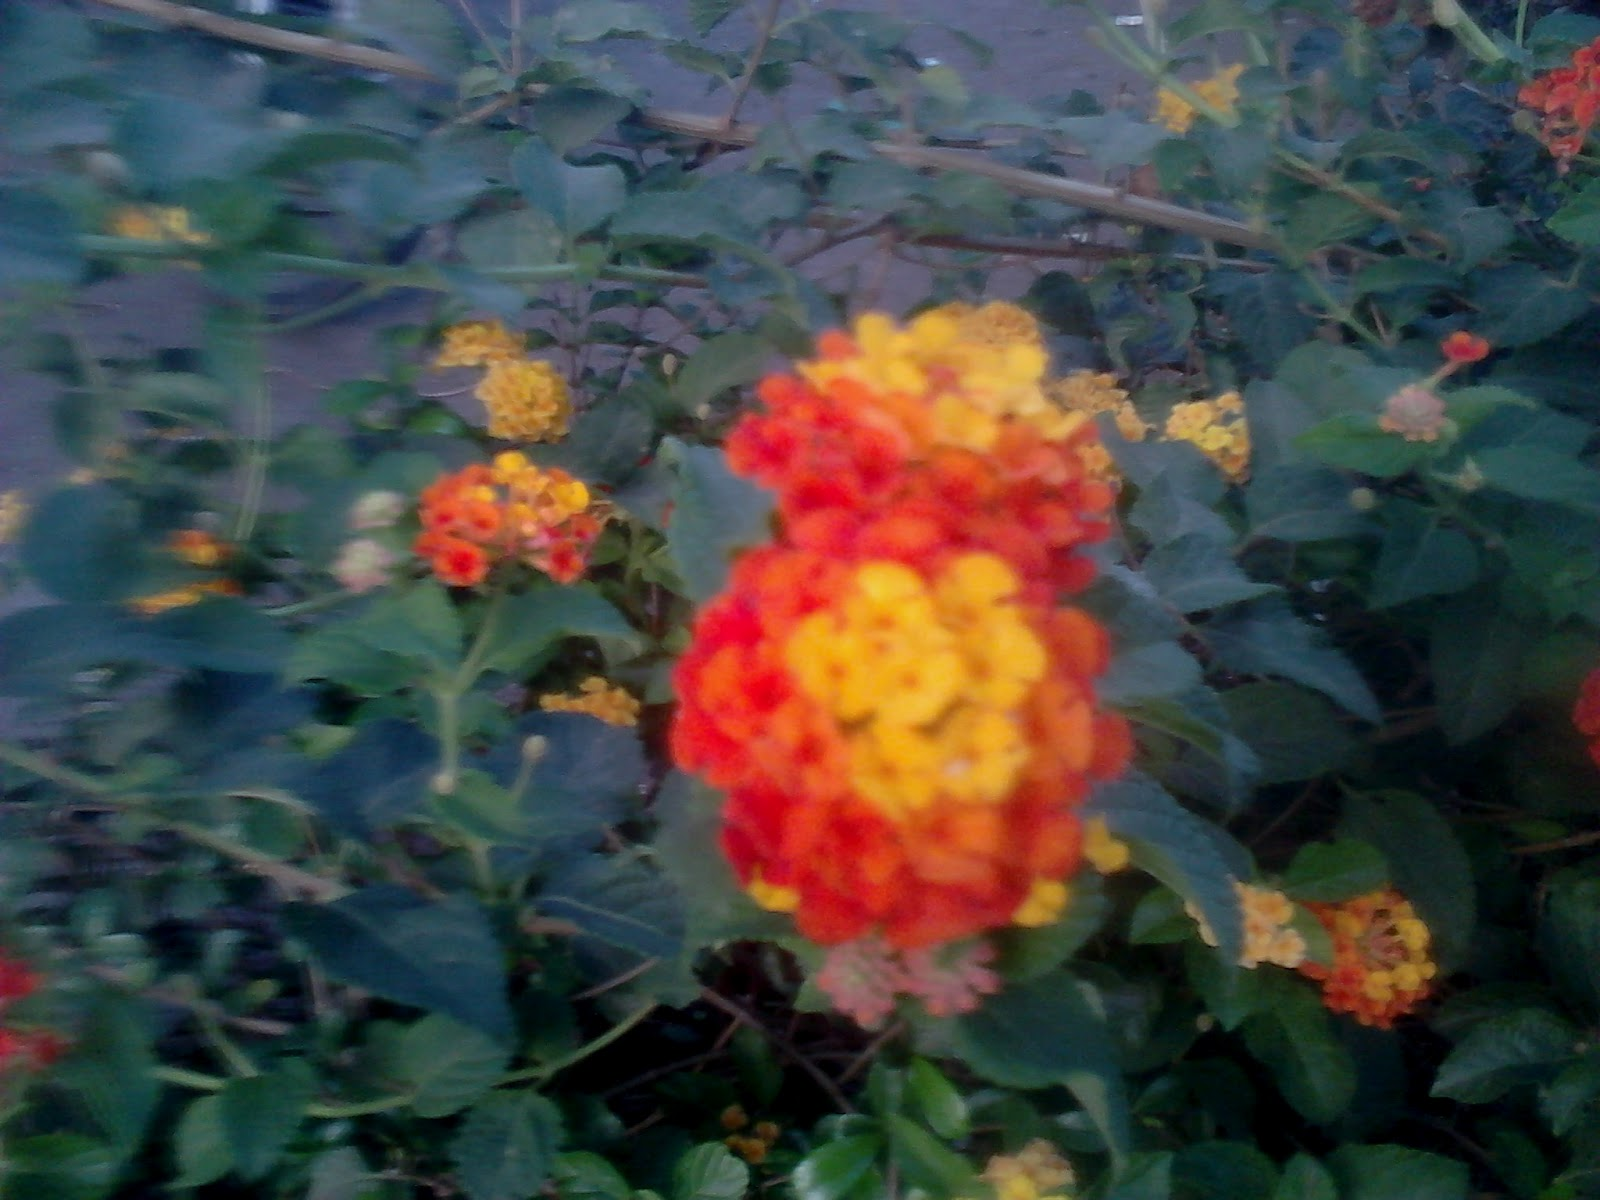 Garden Care Simplified The Colourful Fragrant Lantana Flower Plants